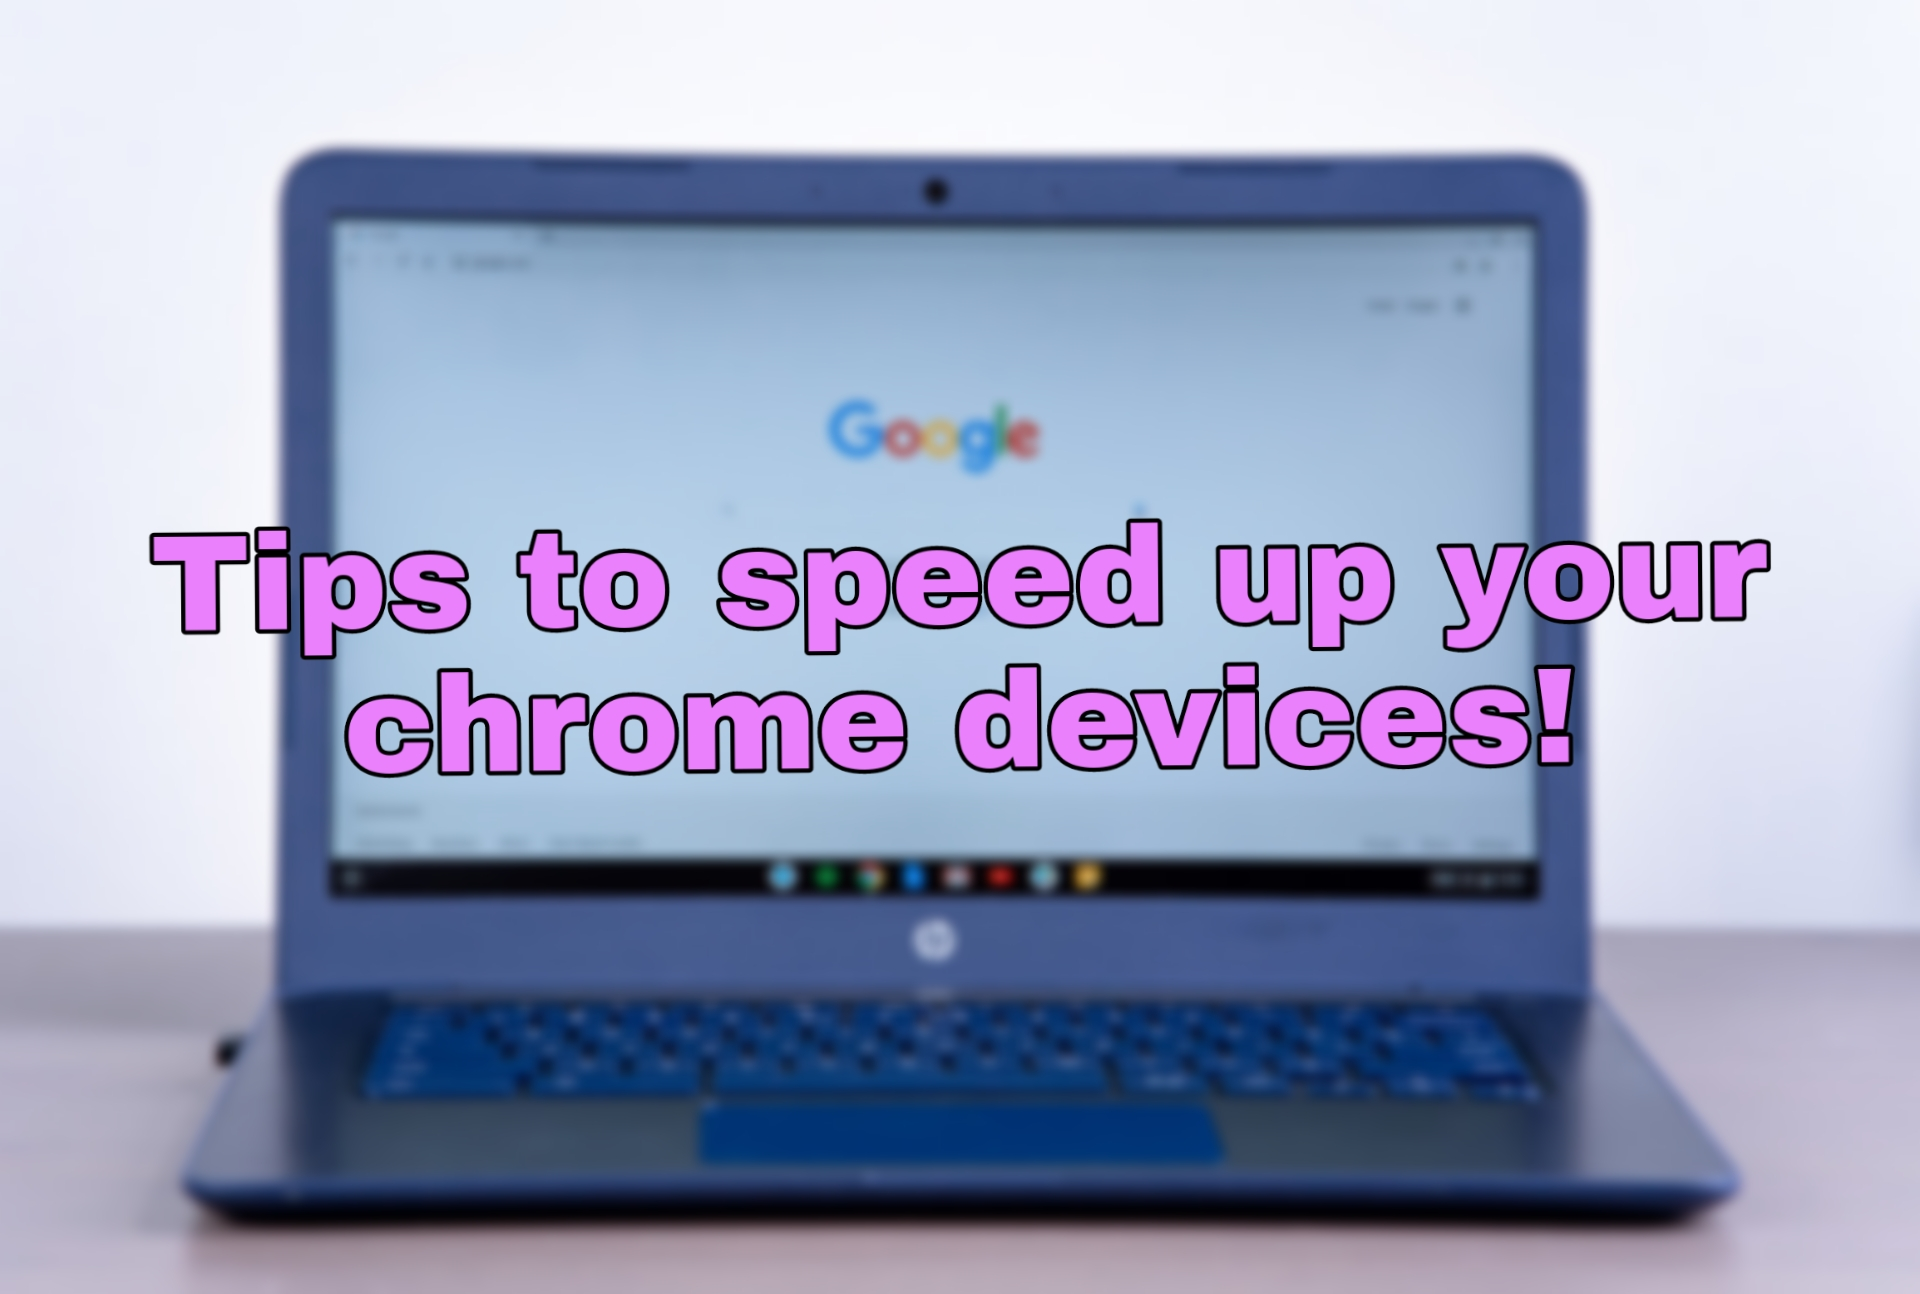 Chrome OS is not running smoothly in Windows 10? Tips to clean up Chrome OS